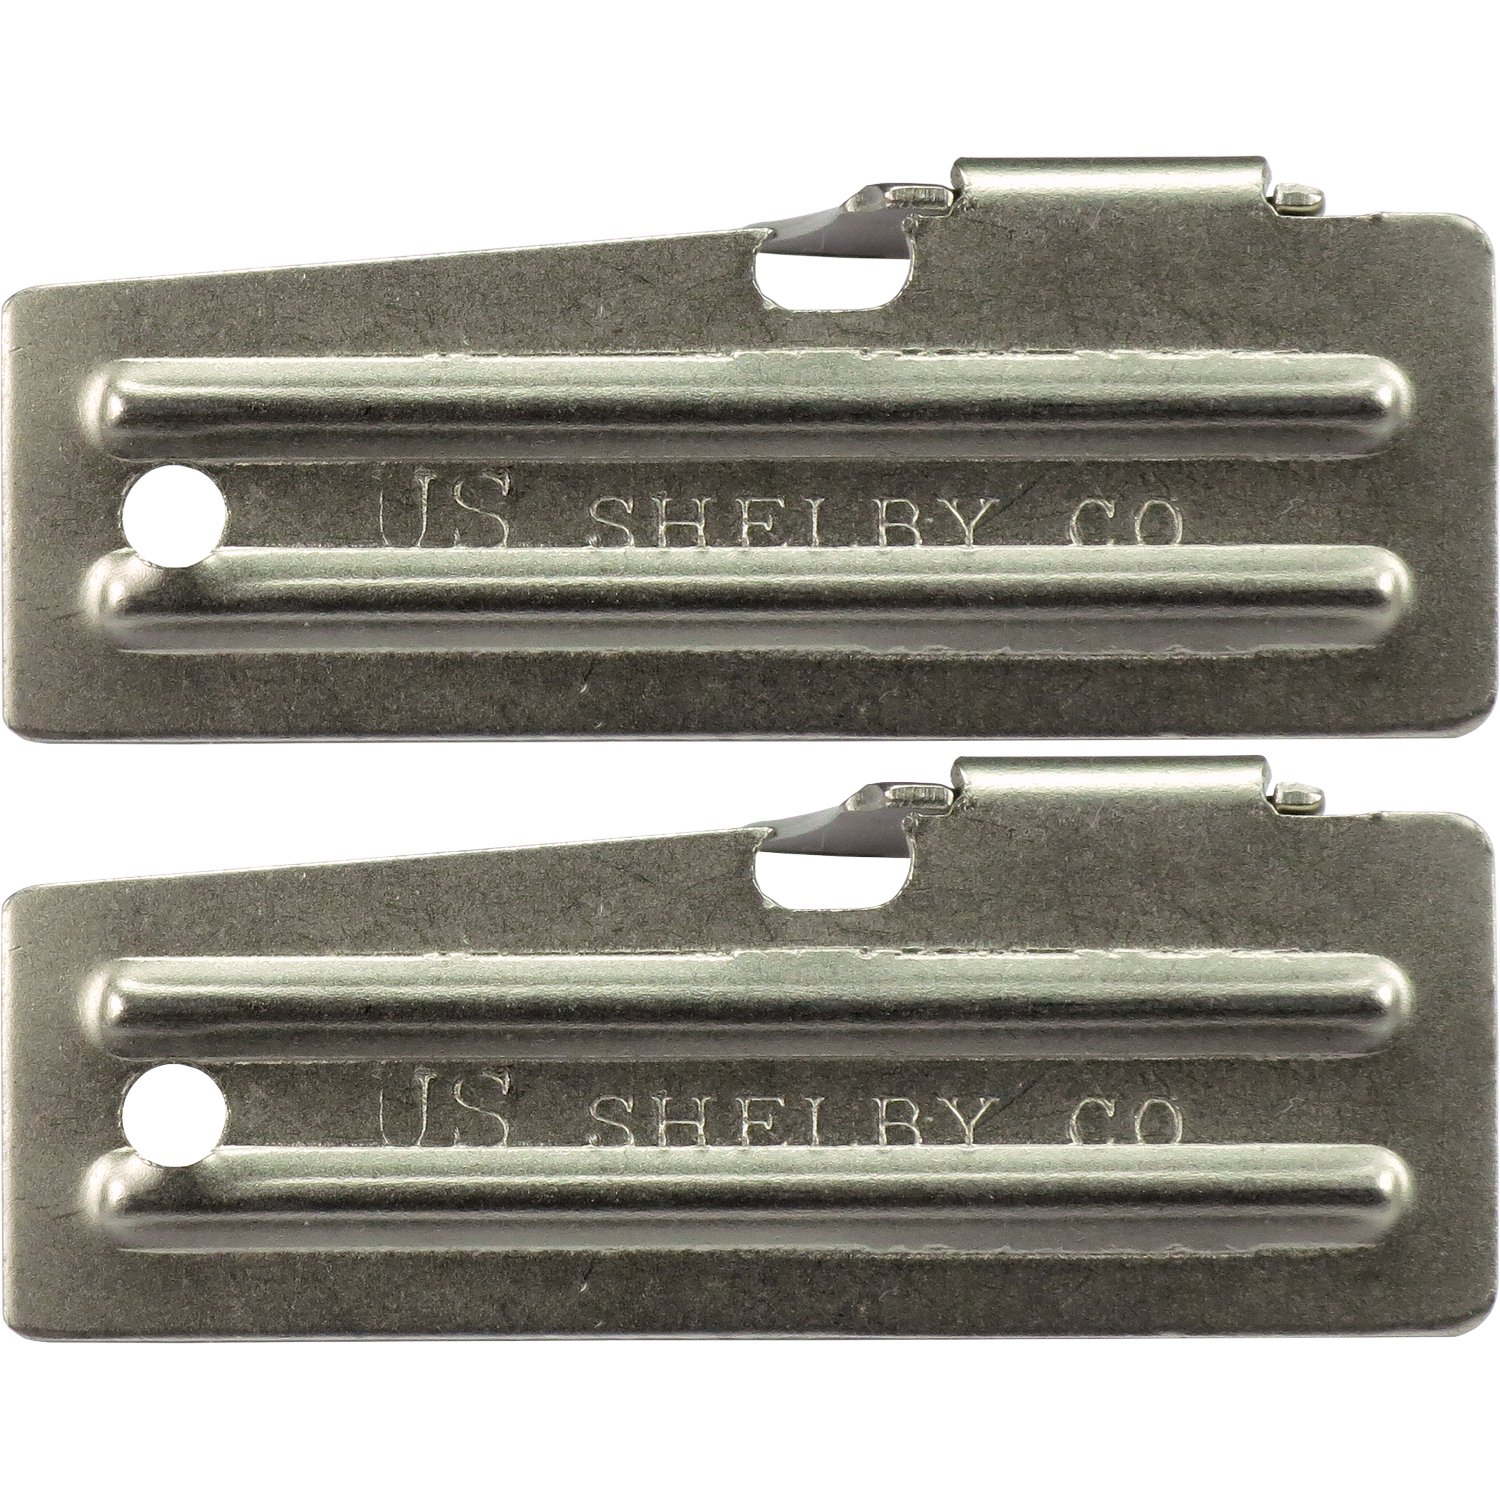 2 Pack Survival Kit Can Opener, Military, P-51 Model CHINA TOPS COMINHKPR07898